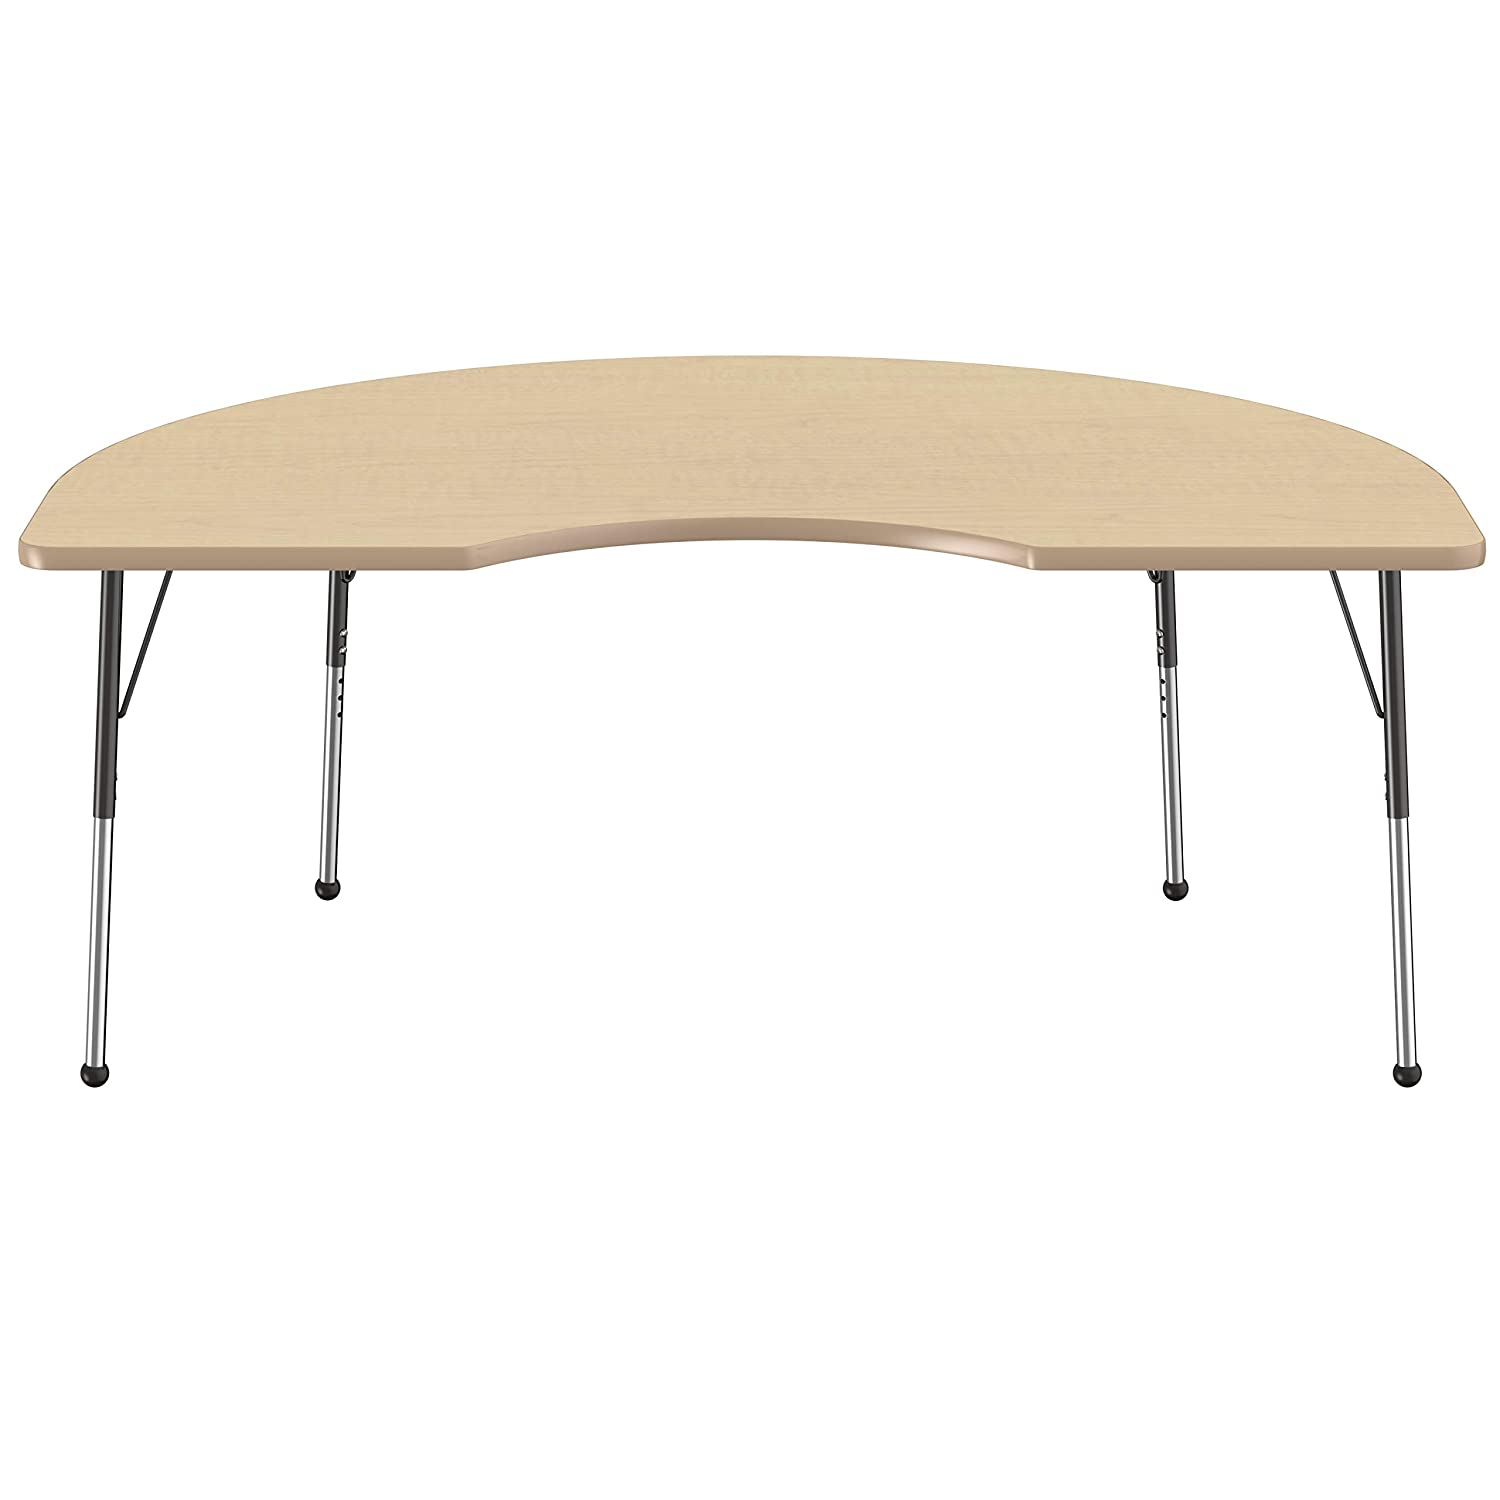 Maple Top and Navy Edge Standard Legs with Swivel Glides for Collaborative Seating Environments Adjustable Height 19-30 inches 48 x 72 inch FDP Kidney Activity School and Office Table